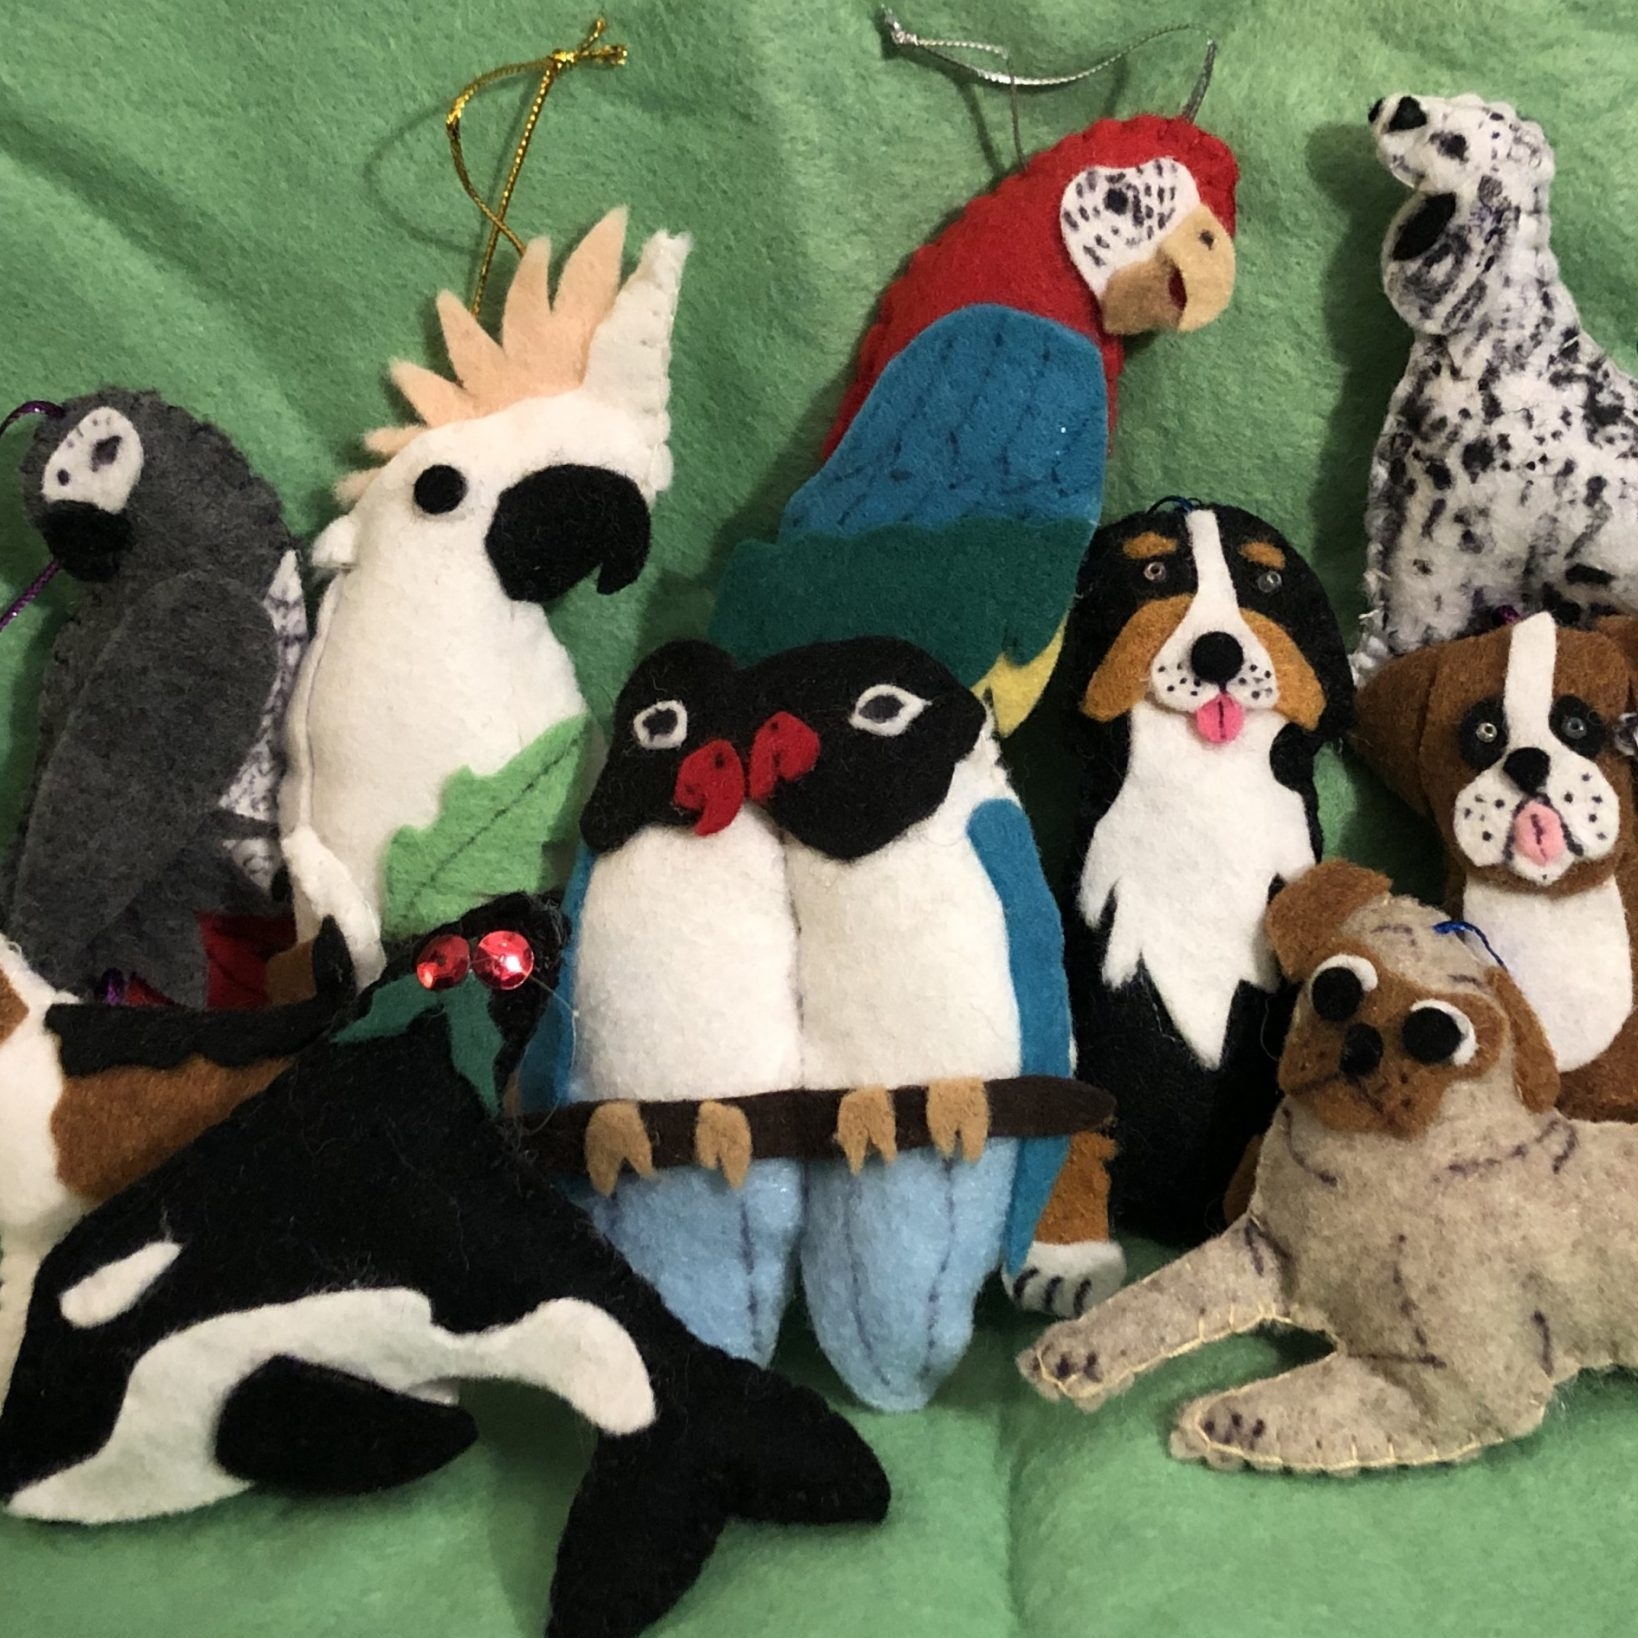 Various animals made out of felt are featured against a green backdrop. Most of the animals are birds, as there are multiple parrots, but there is also a killer whale and some dogs. Each animal has a string attached so it can be hung up as decoration.